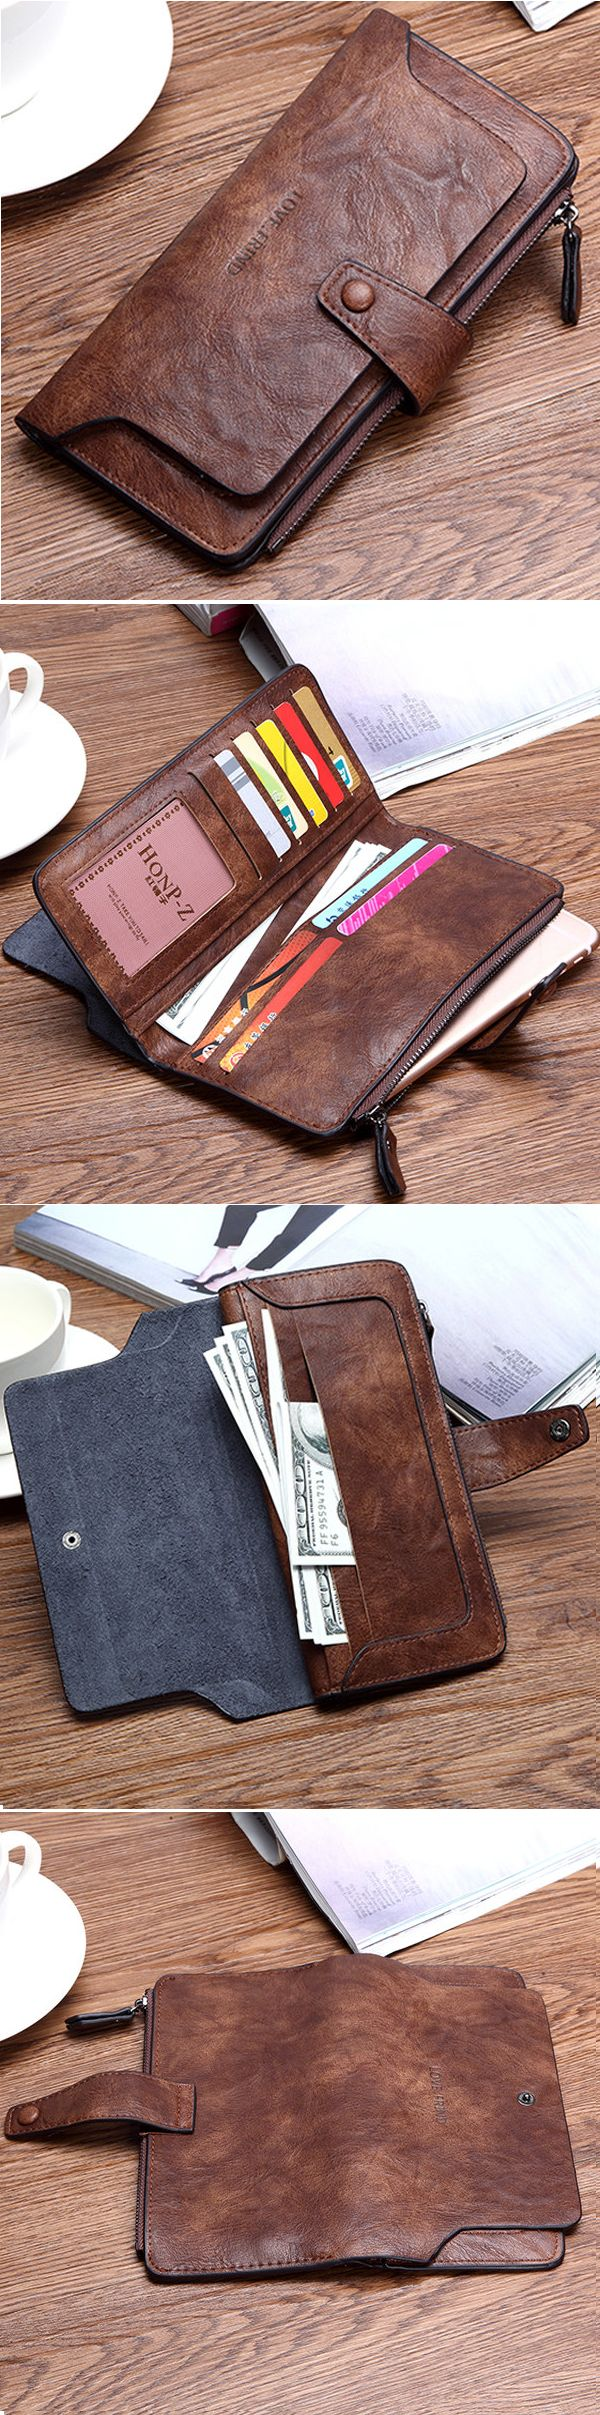 US$12.31 Women Long Wallet Elegant PU Evening Wallet Wristlet Wallet Phone Bag For Iphone,Samsung,Xiaomi